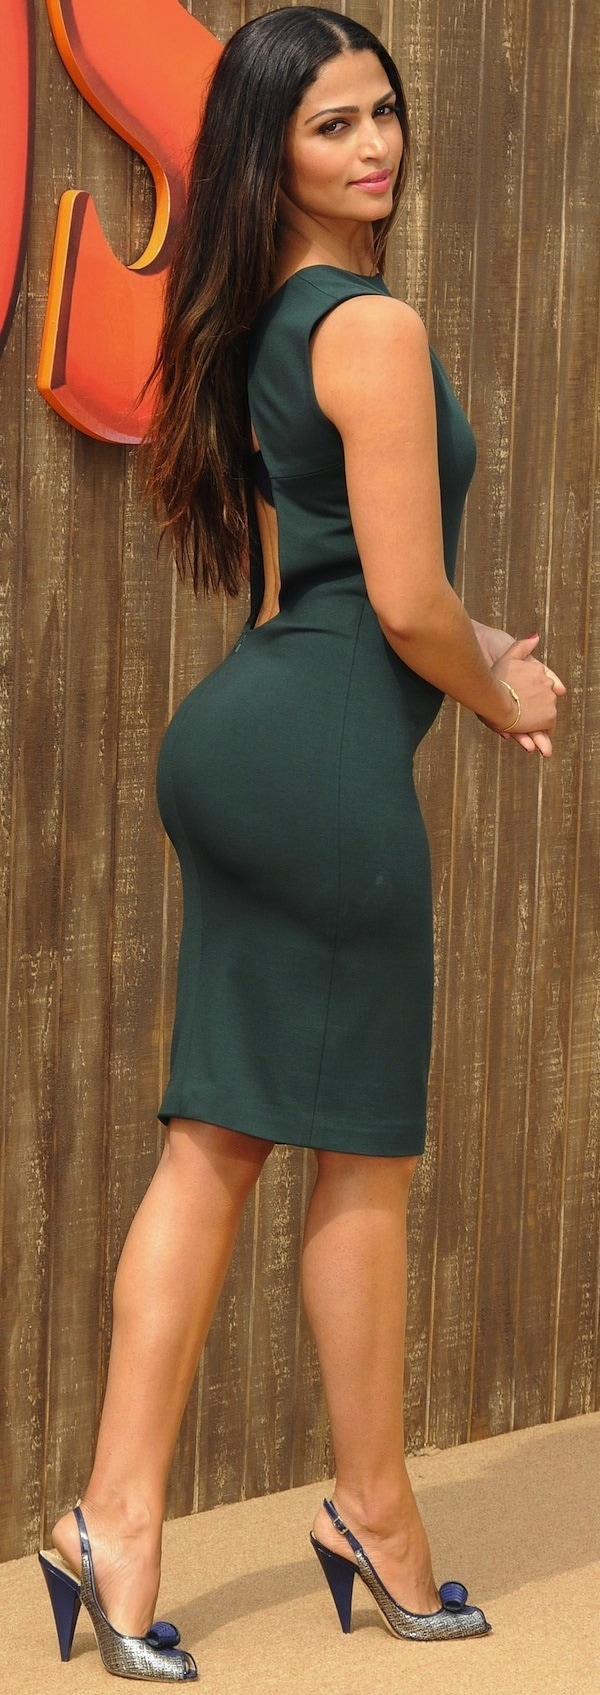 Camila Alves looking stunning in a backless sleeveless dark green dress